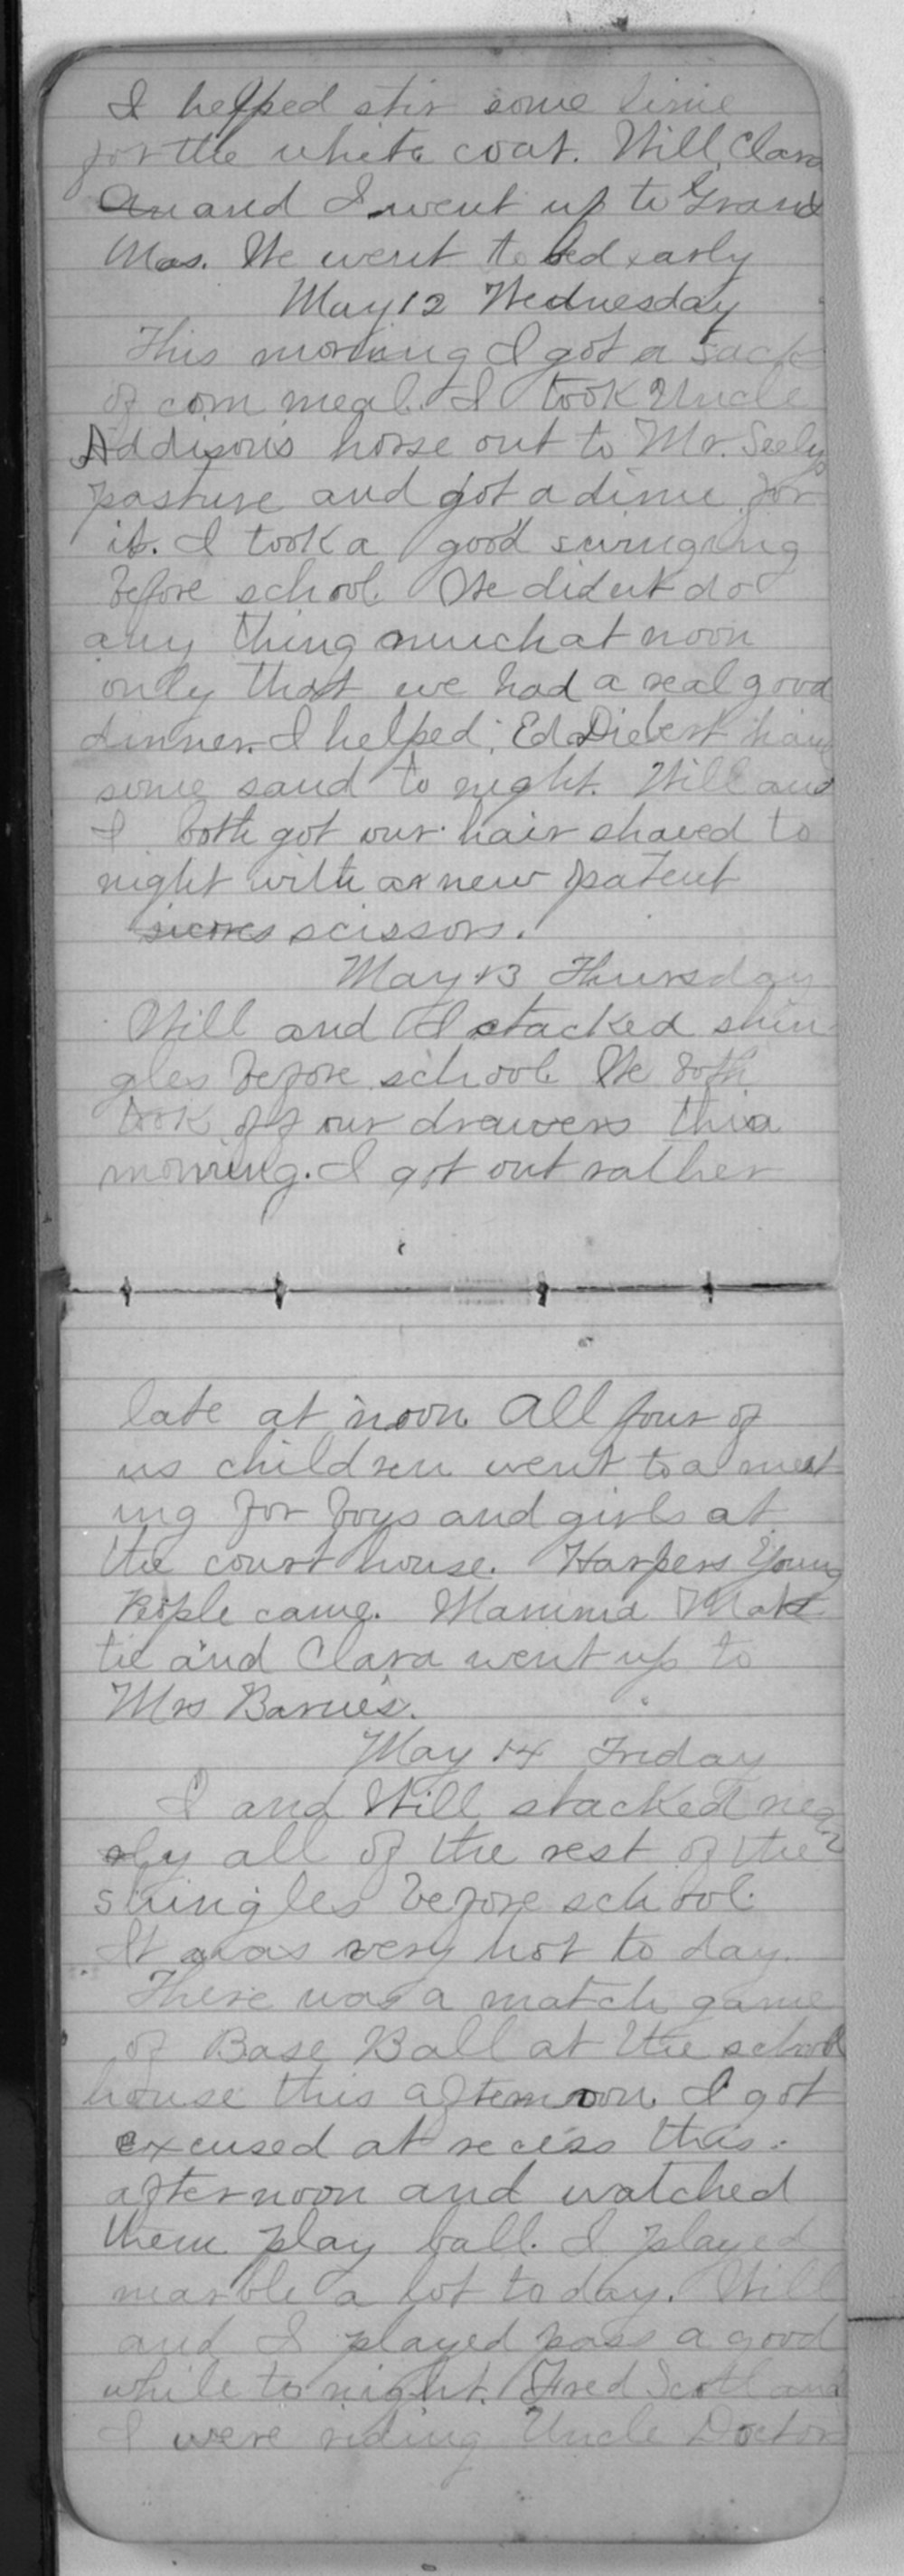 "Edward S. (""Ned"") Beck diaries - May 12, 1880"